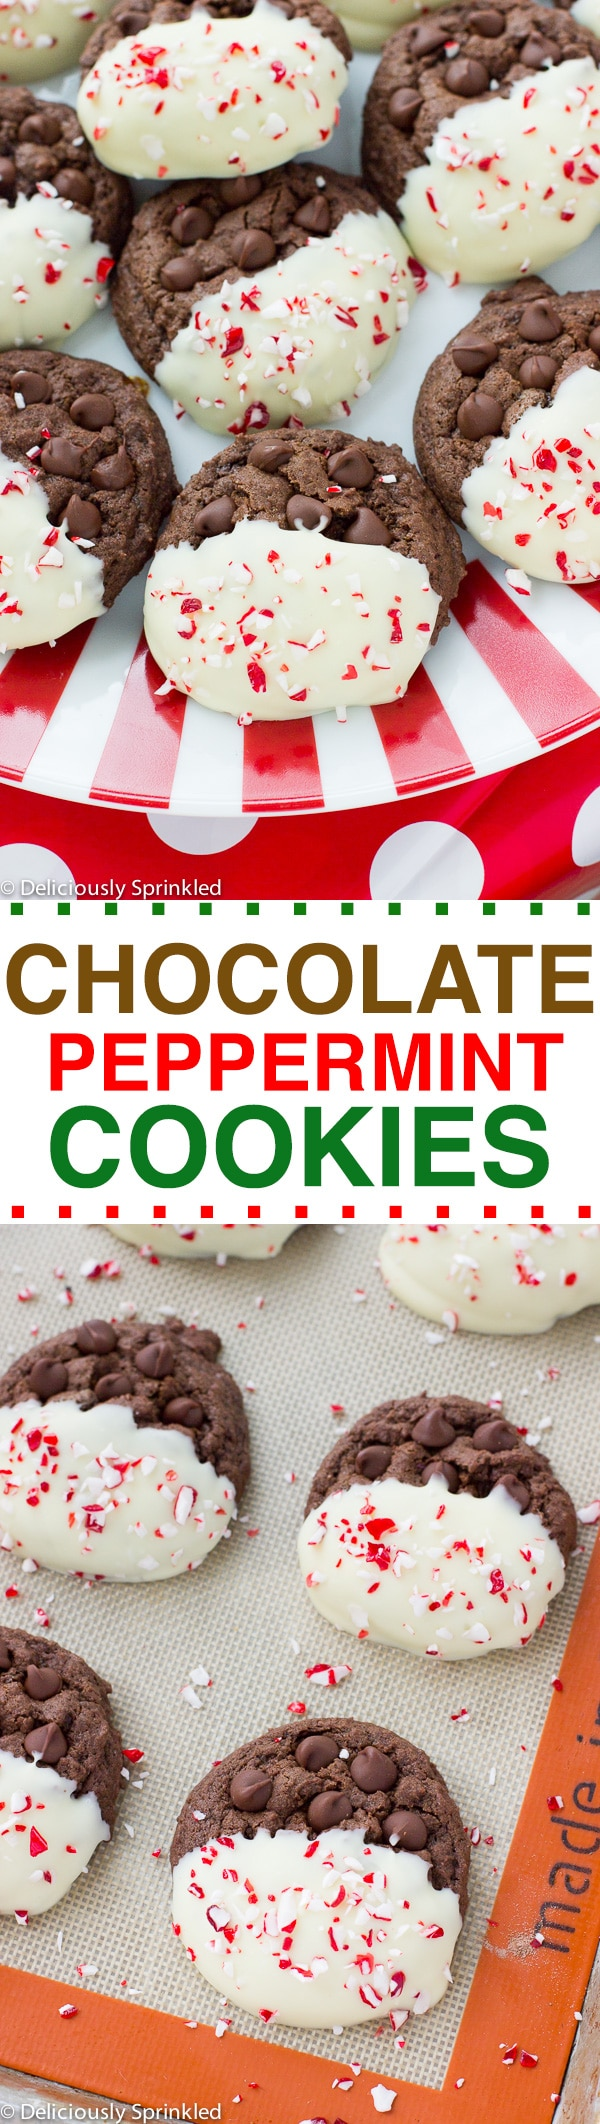 chocolate peppermint cookies recipe